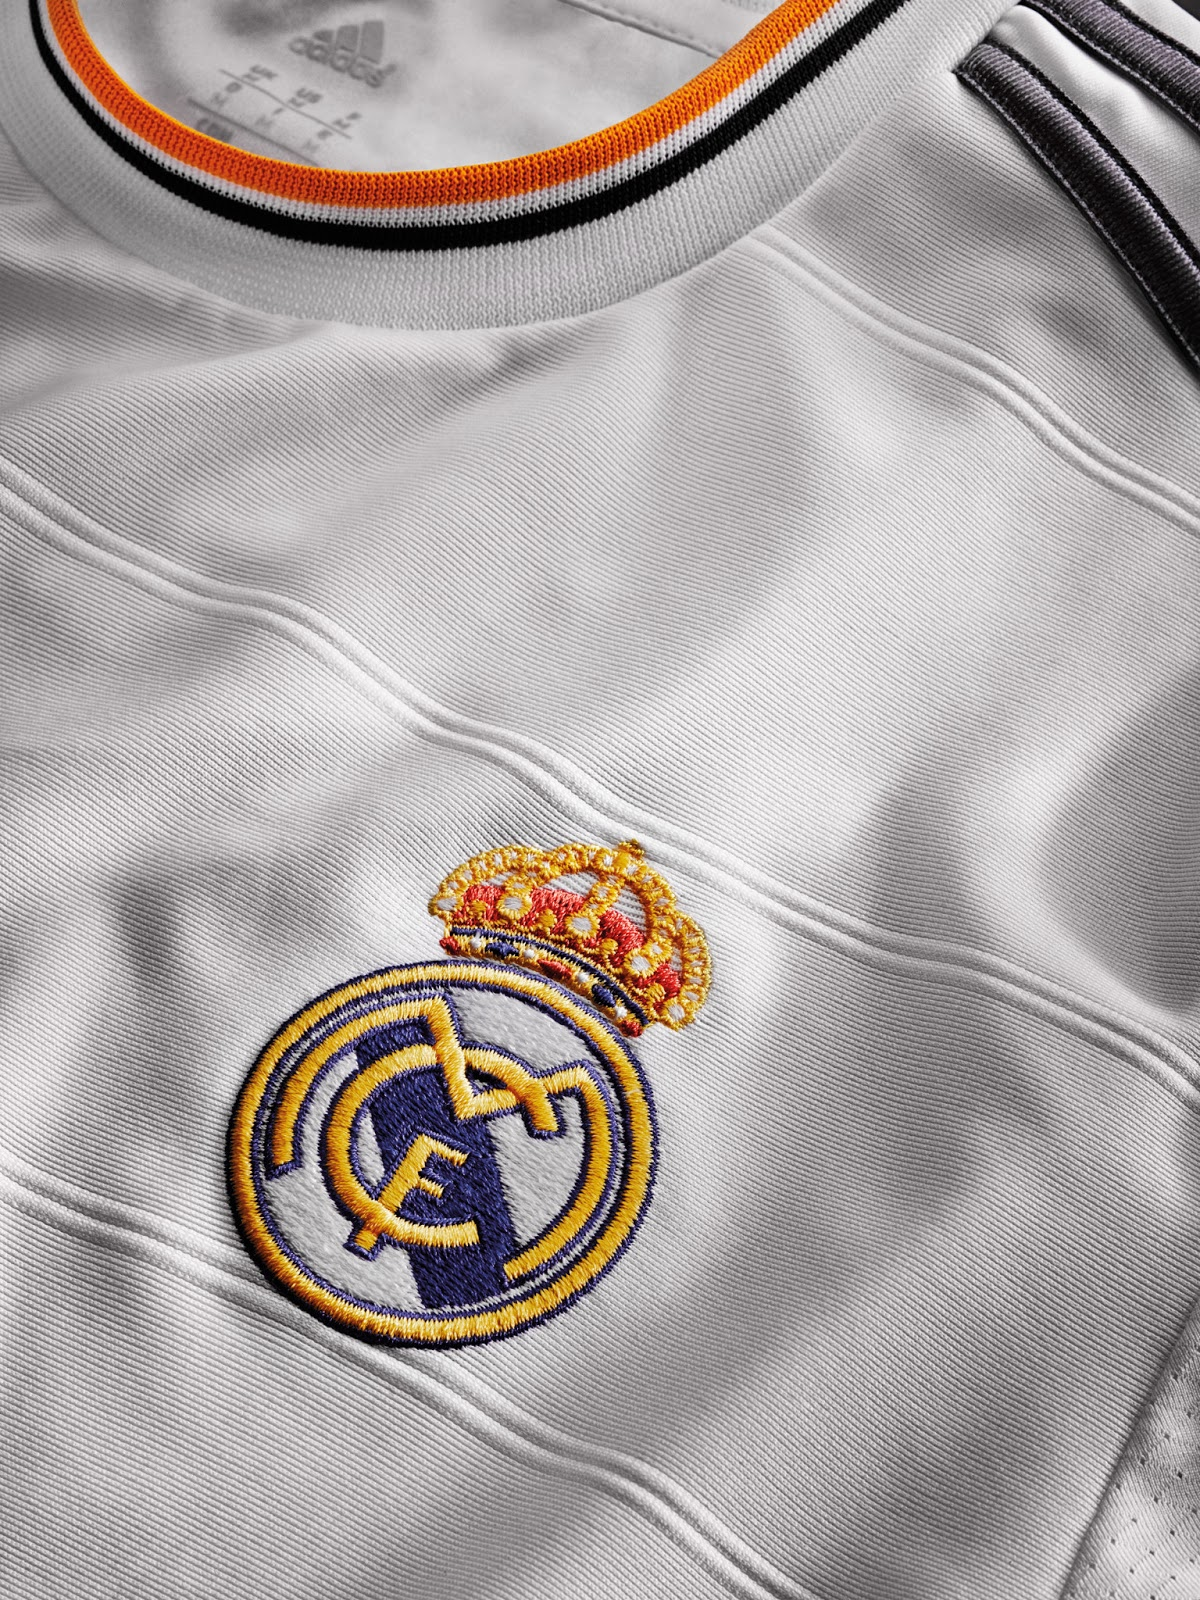 Third Madrid and Released  13-14 Away Real Home, Kits